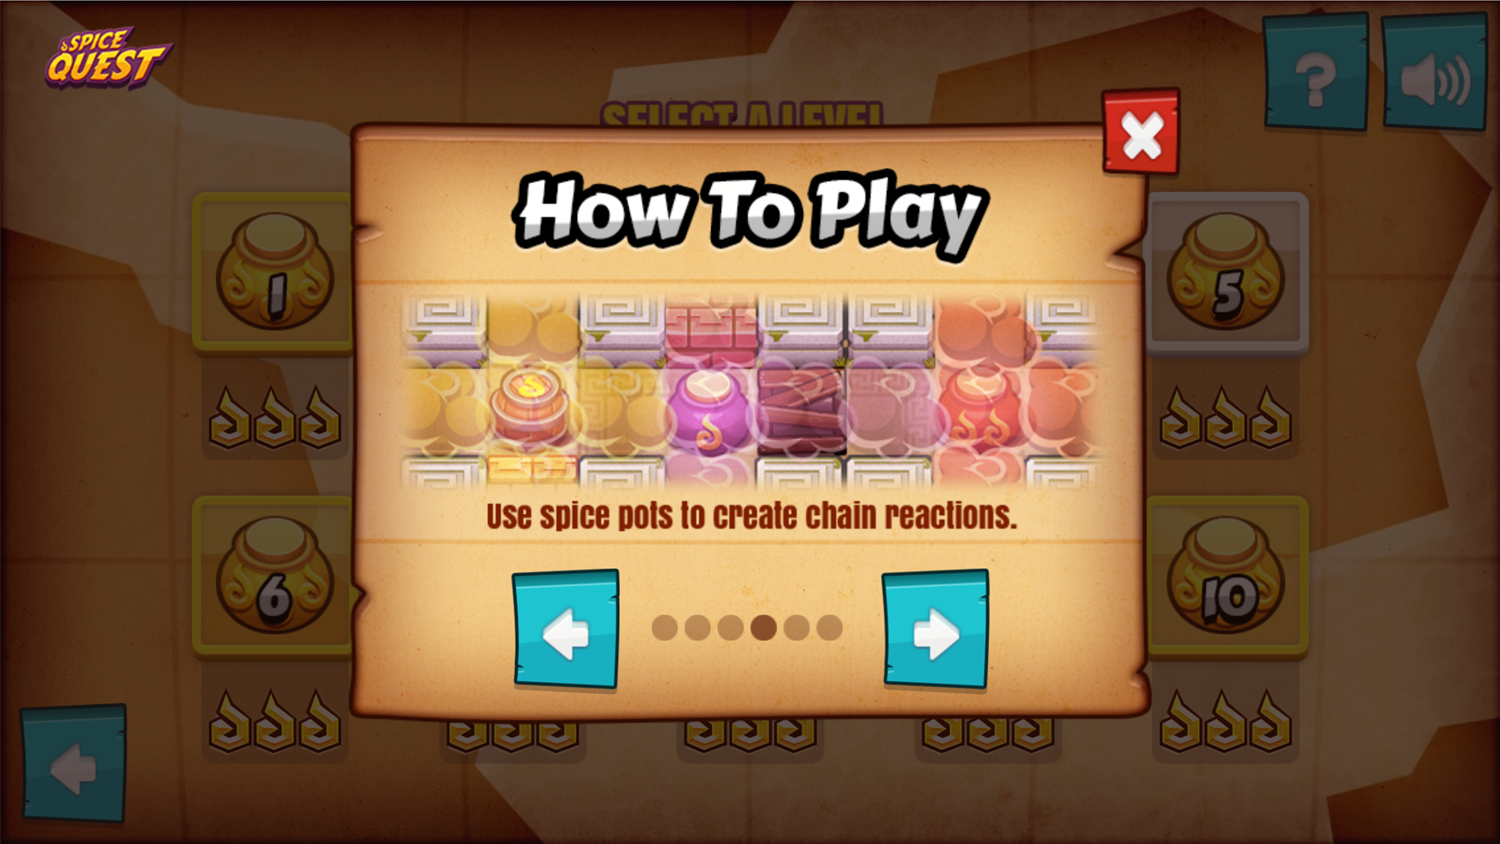 Spice Quest Game Chain Reactions Screenshot.